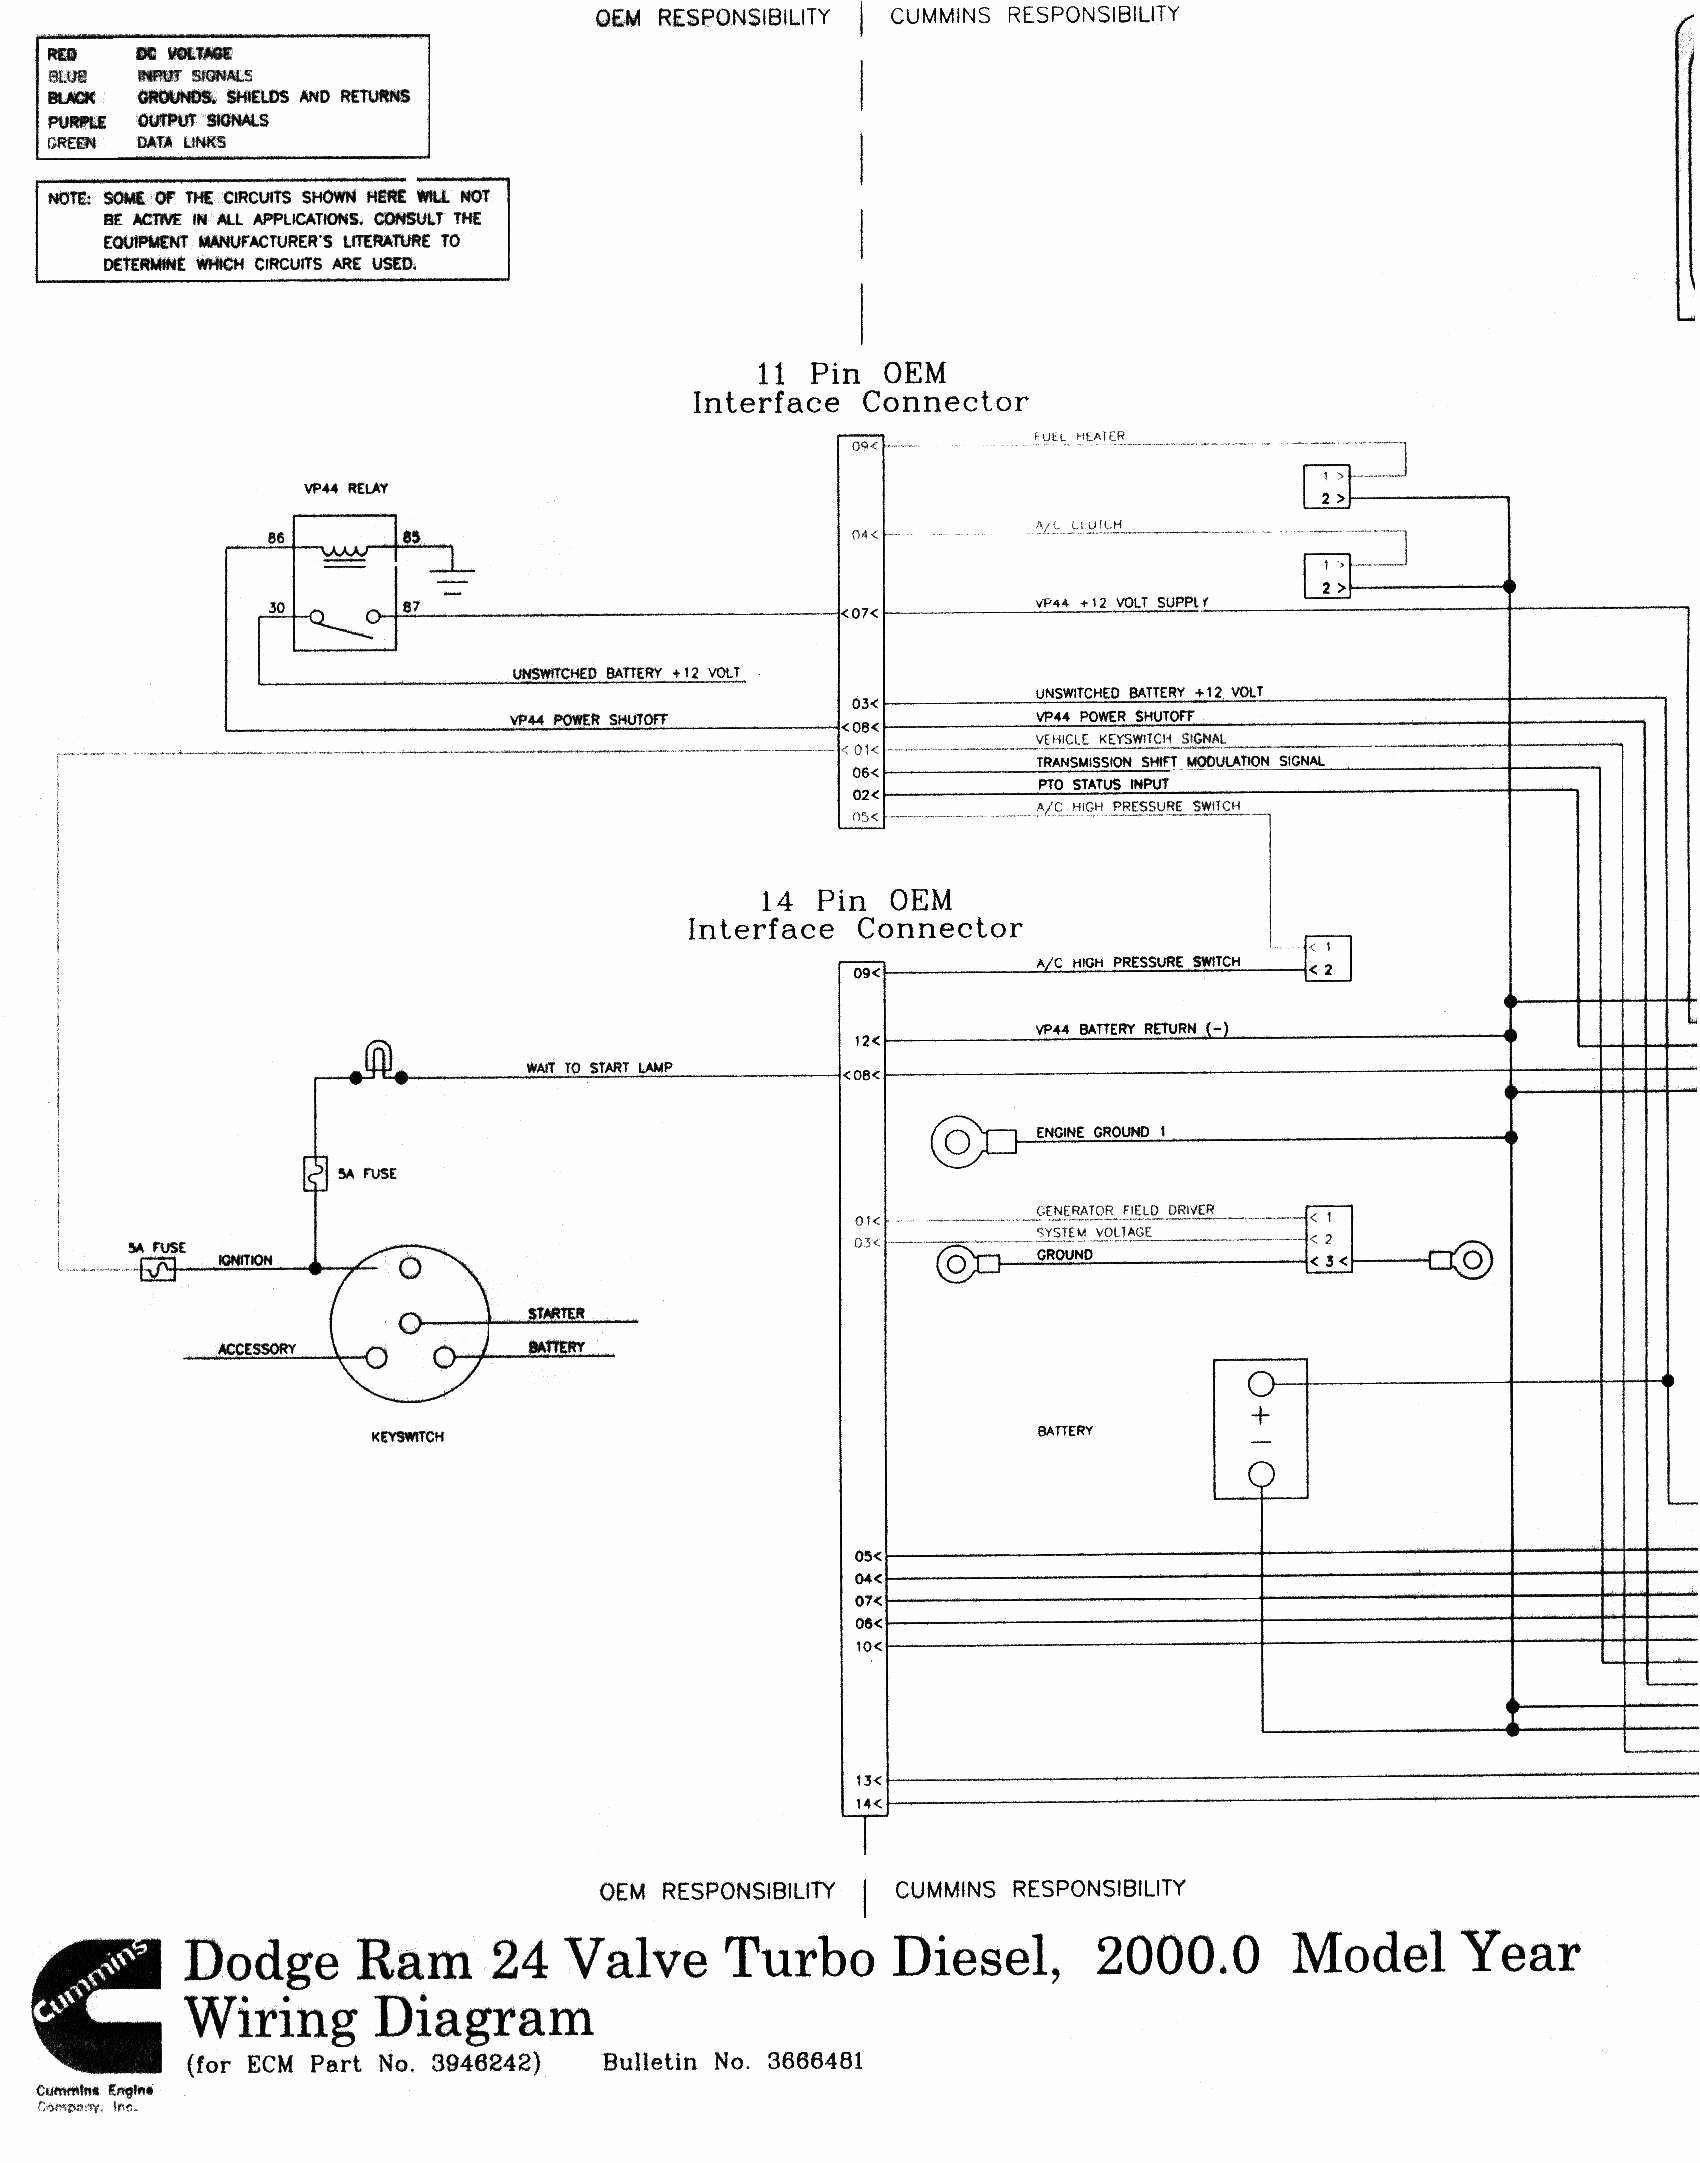 New Wiring Diagram for 2014 Dodge Ram 1500 #diagram #diagramsample  #diagramtemplate #wiringdiagram #diagramchart #worksheet #w… | Dodge trucks  ram, Dodge ram, DodgePinterest